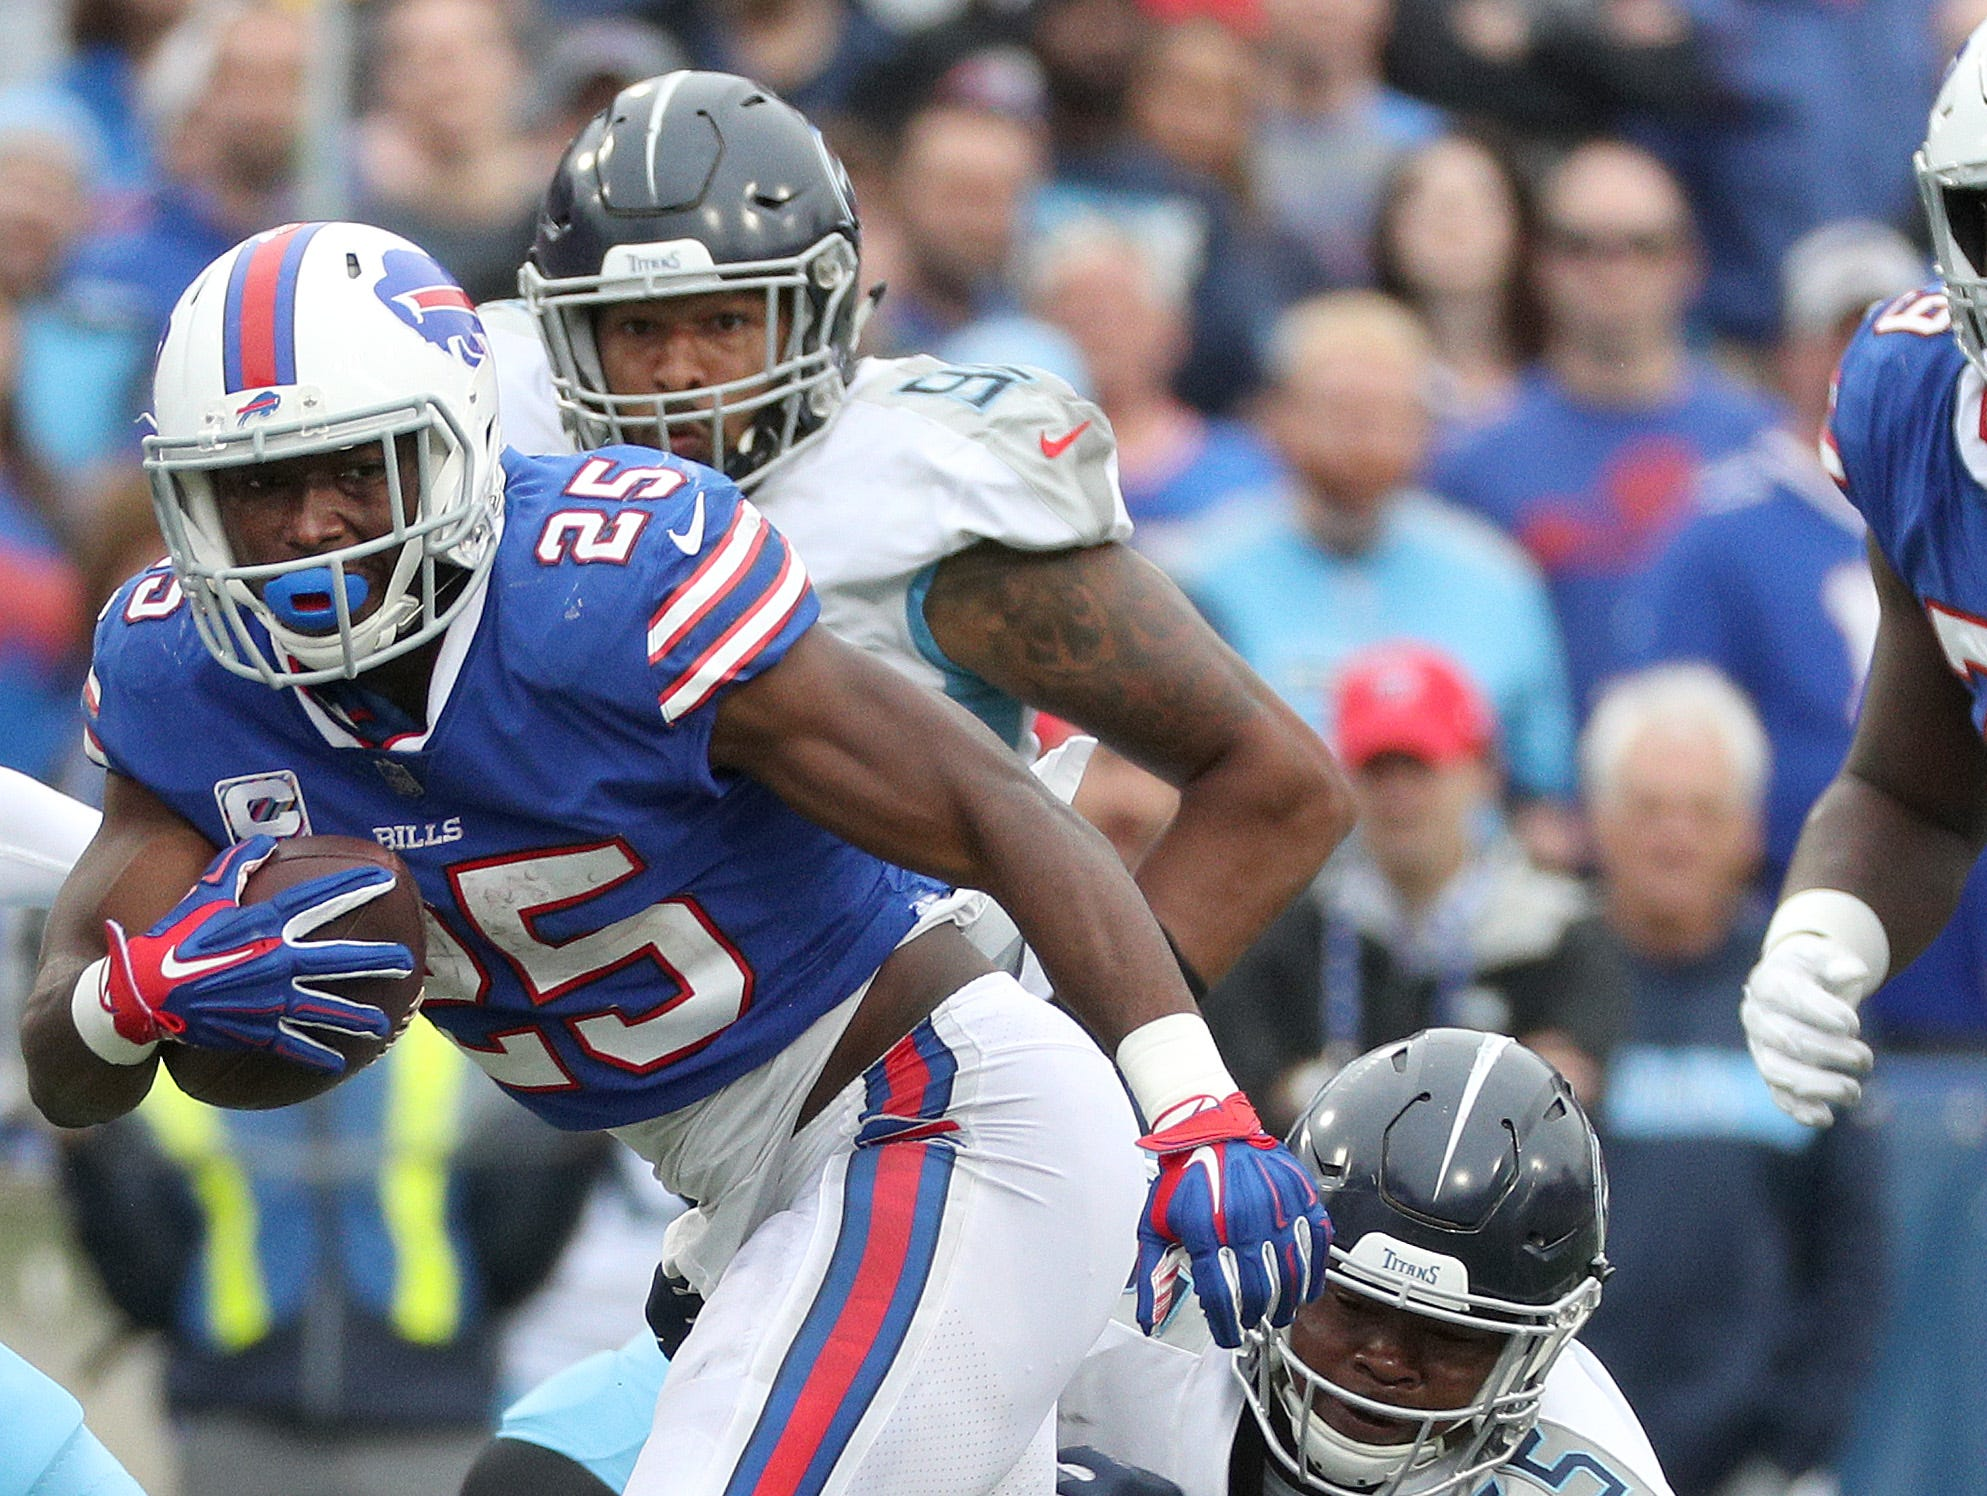 Bills running back LeSean McCoy is tackled from behind by Titans Jayon Brown.